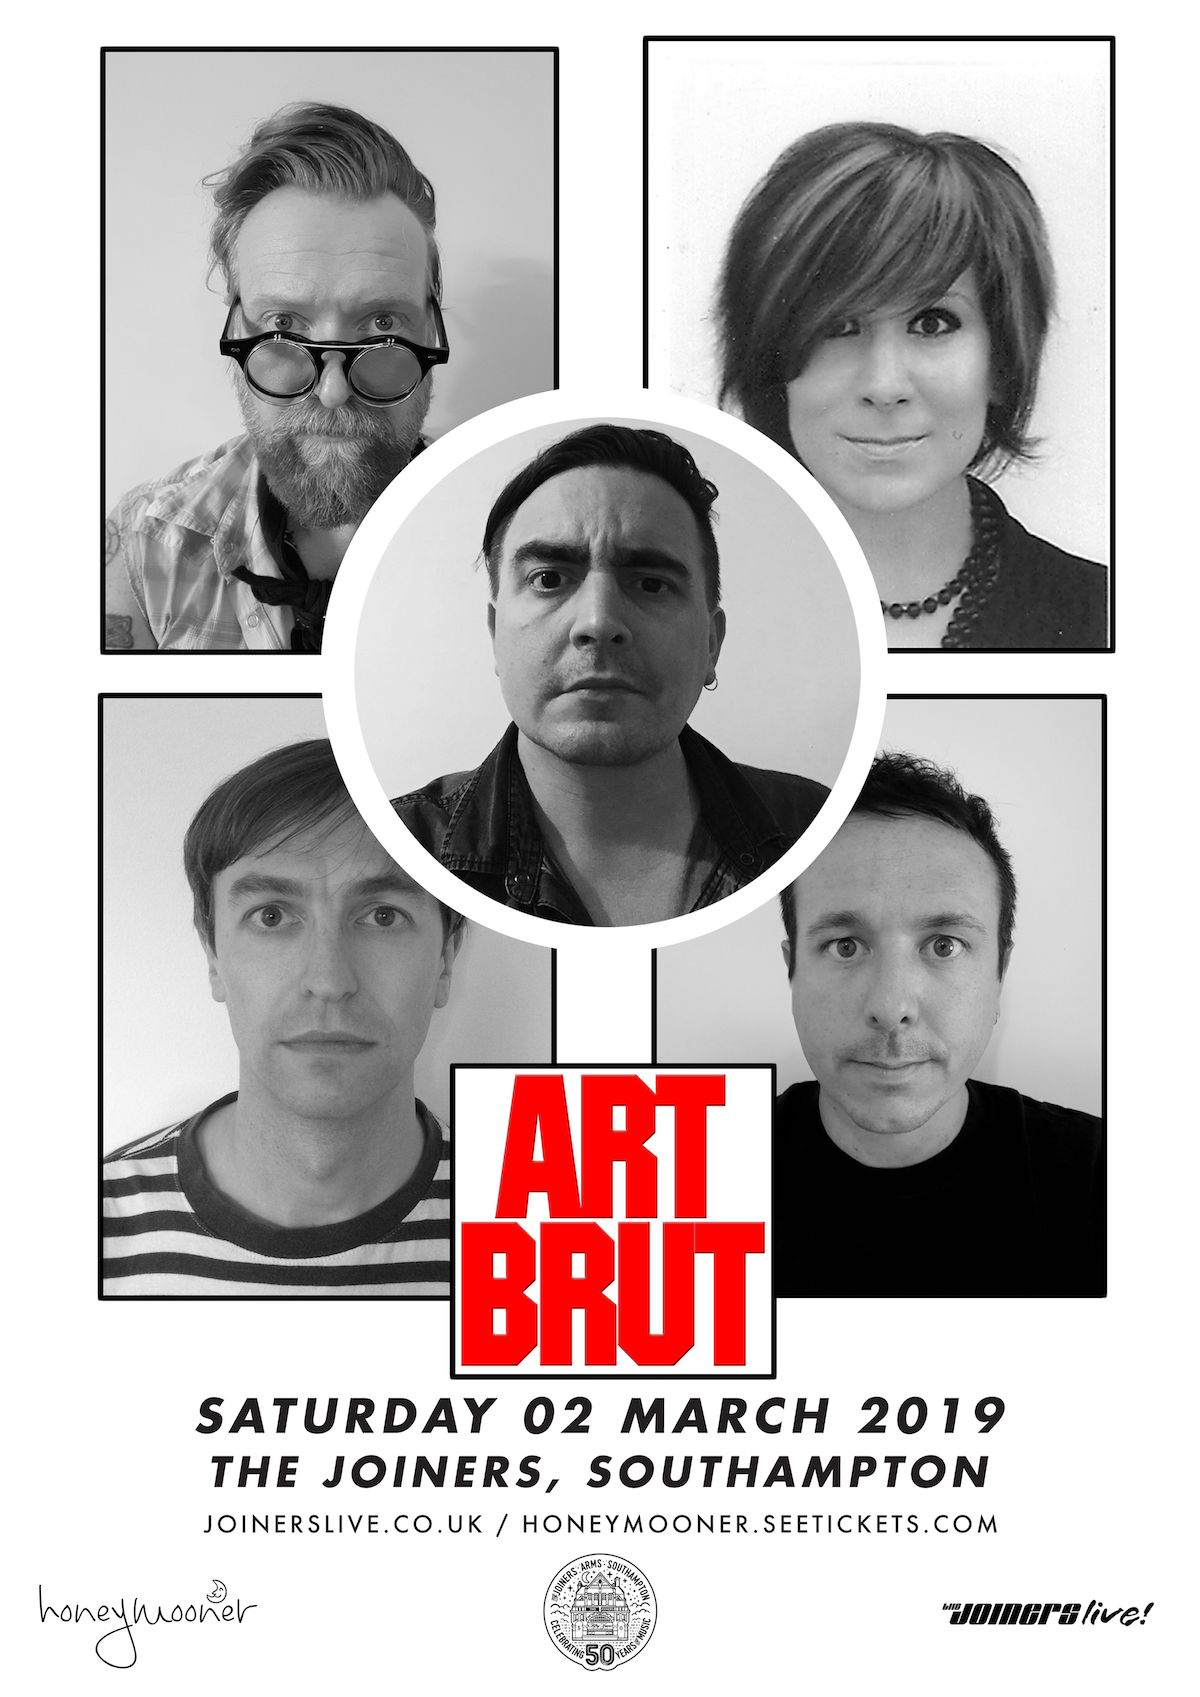 ART BRUT *SOLD OUT*